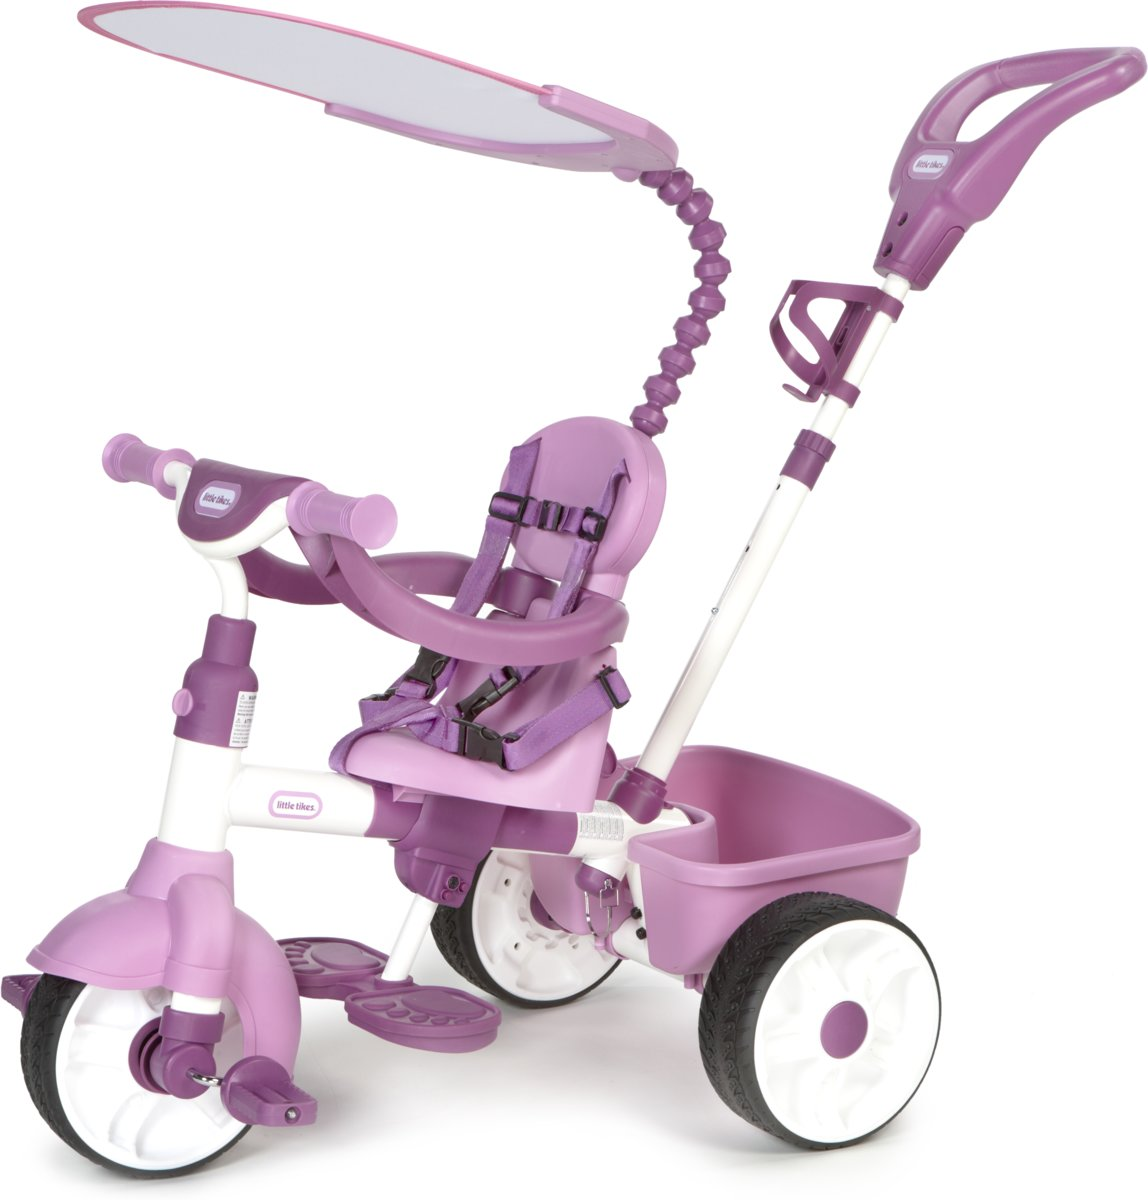 Little Tikes 4 in 1 trike girls